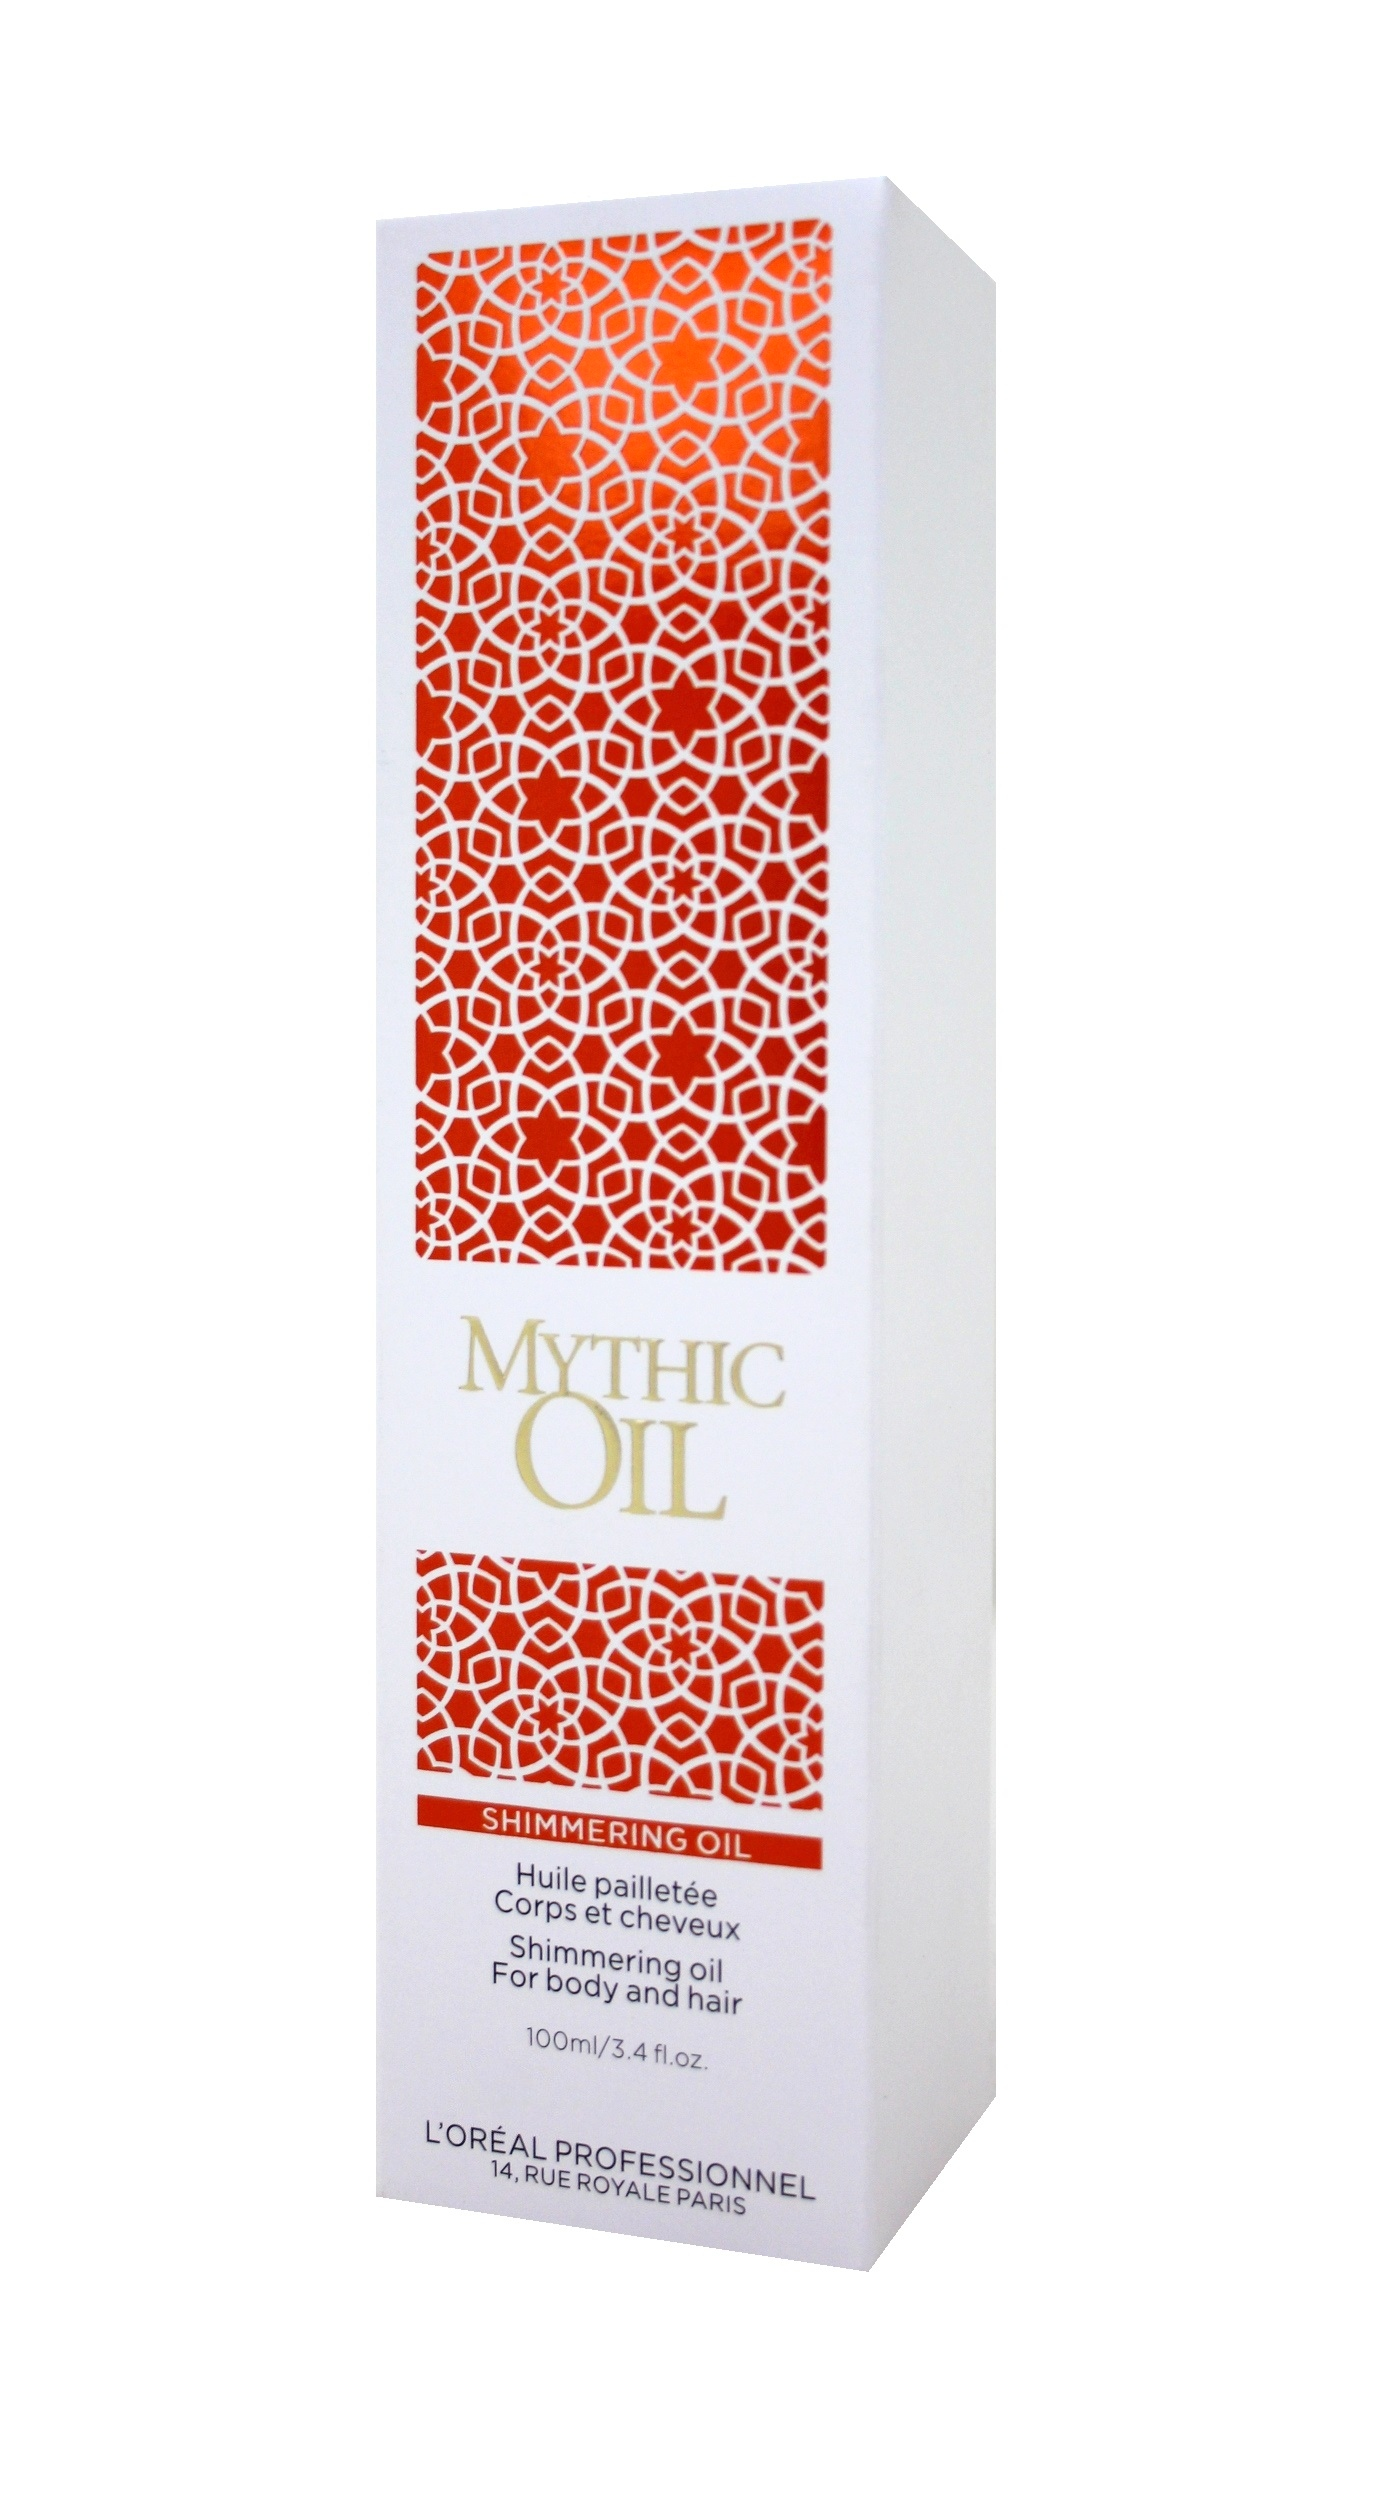 L'Oreal Paris Mythic Oil Shimmering